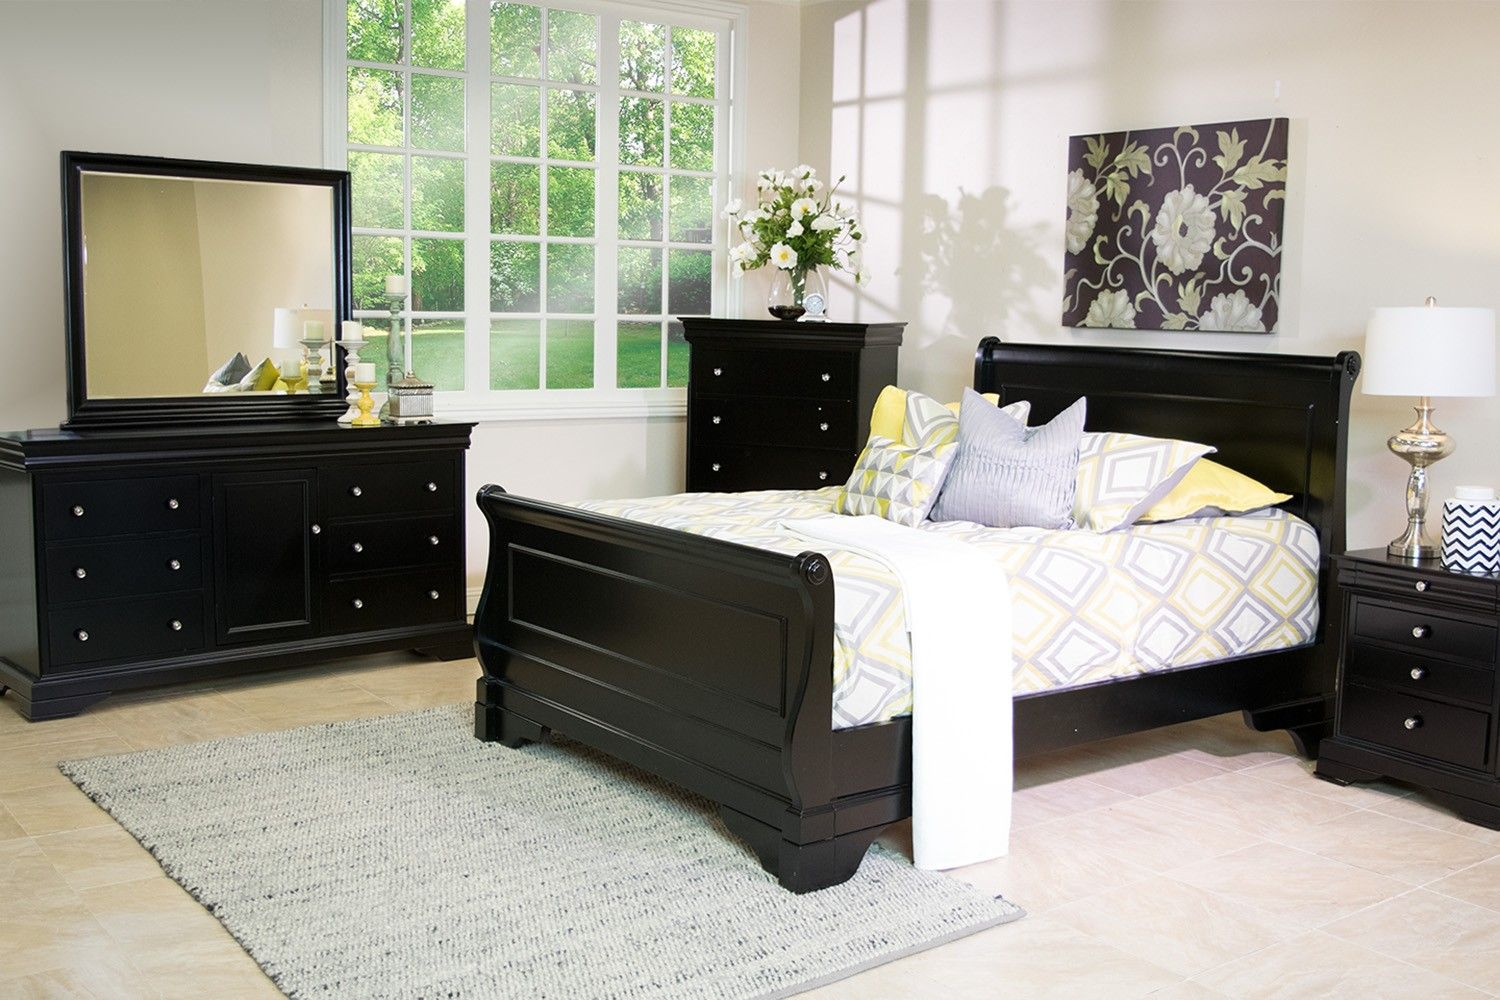 Versailles Bedroom in Black - Bedroom | Mor Furniture for Less ...